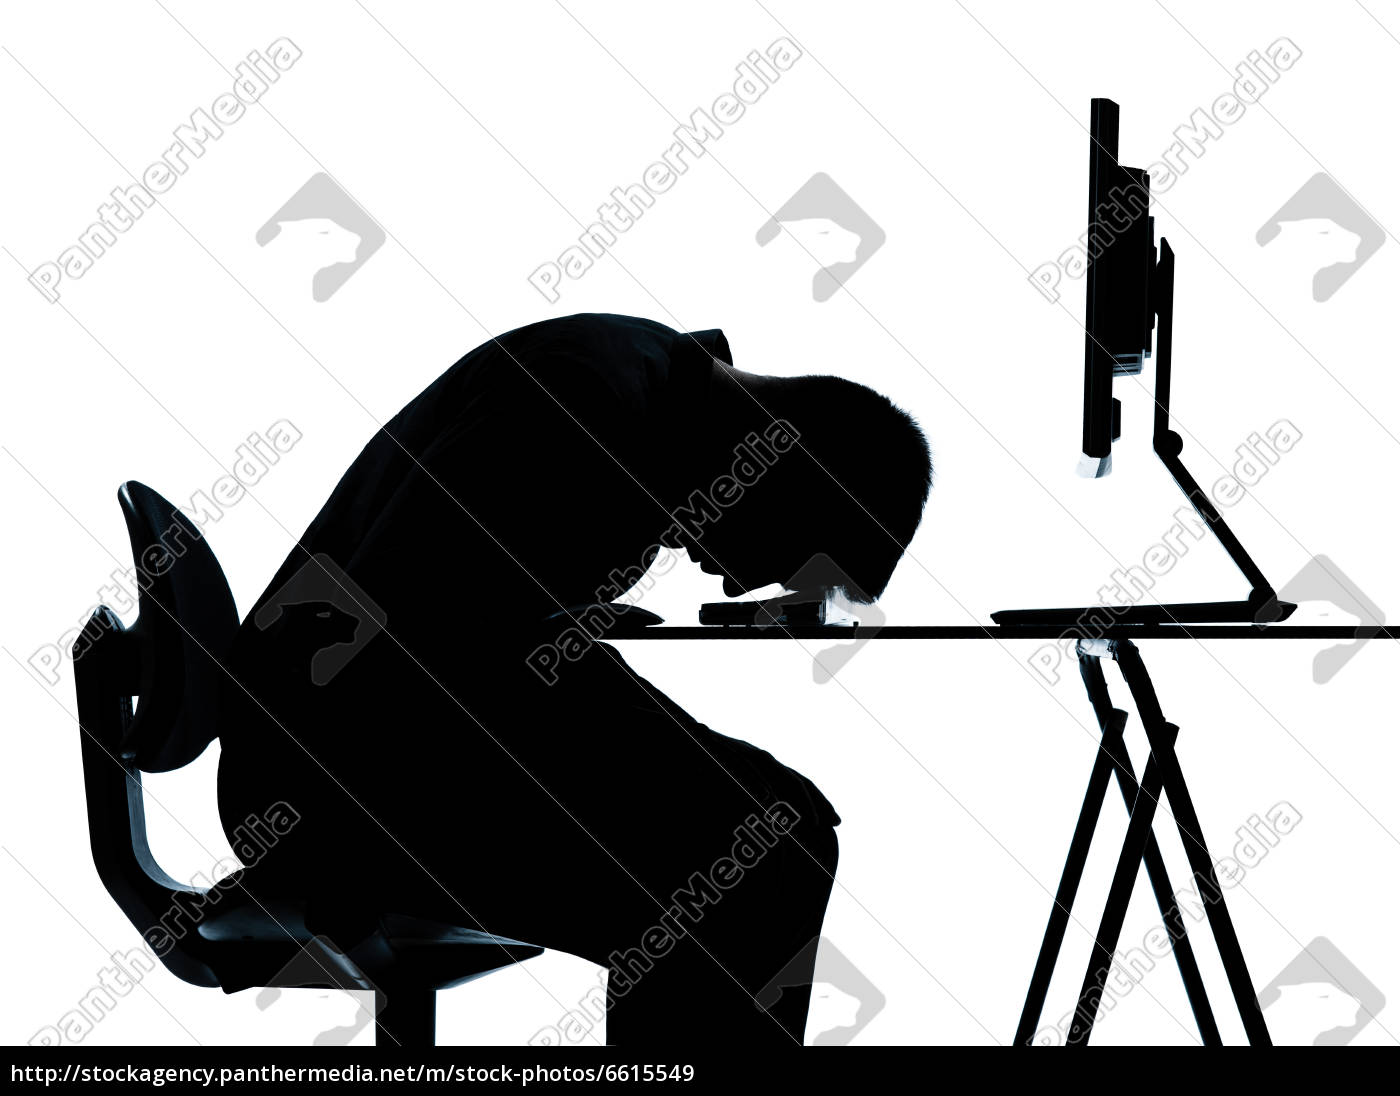 One Business Man Silhouette Funny Exercise Balancing Royalty Free Image 6615549 Panthermedia Stock Agency